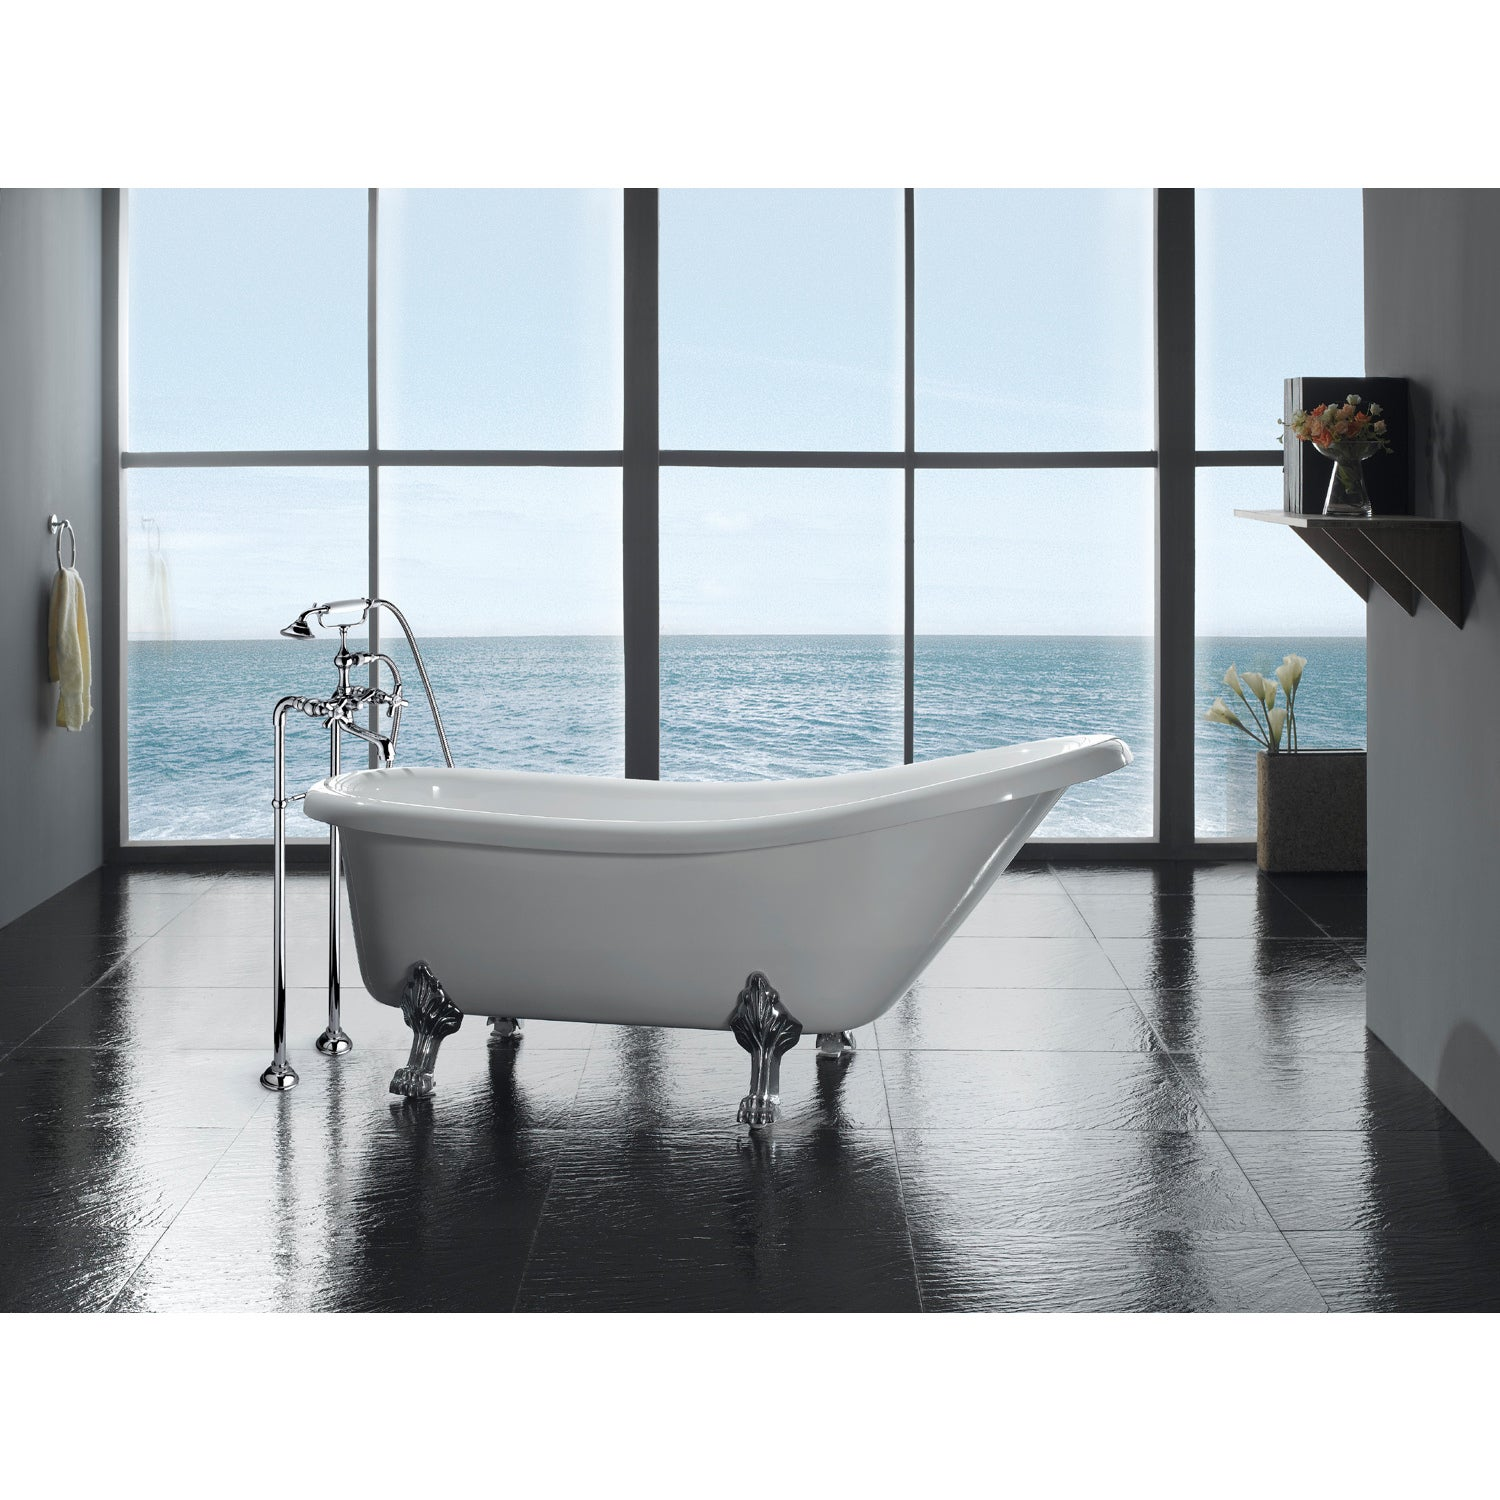 55 inch clawfoot tub. OVE Decors Classic 66 inch Clawfoot Tub with Faucet  Claw 55 clawfoot tub Plumbing Fixtures Compare Prices at Nextag